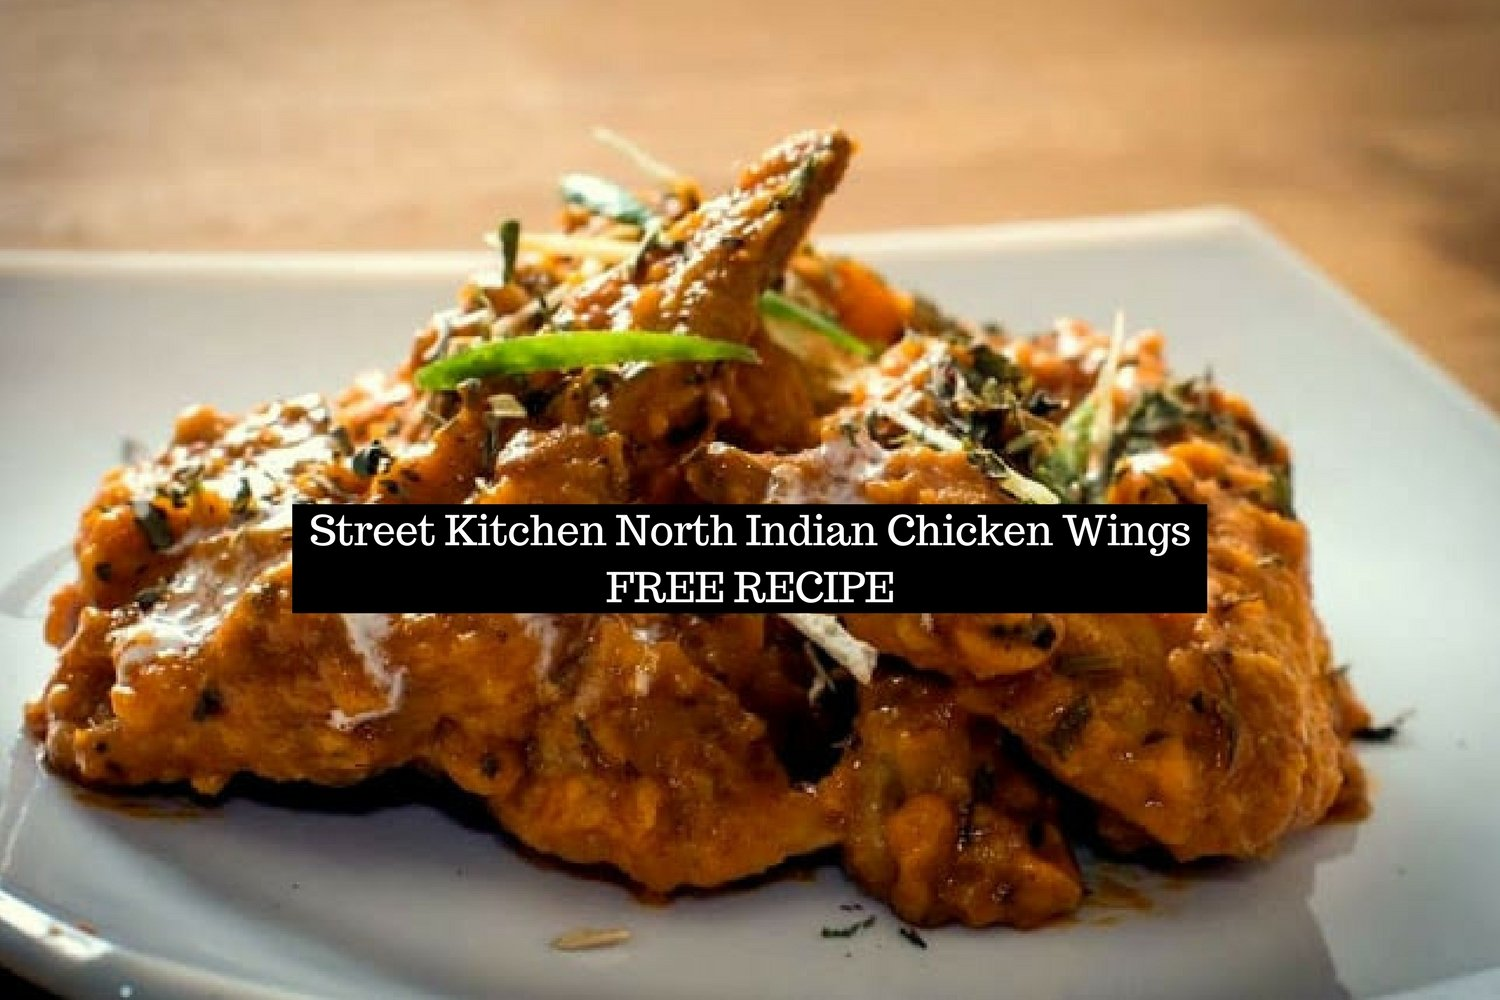 Amazon street kitchen north indian butter chicken 255g amazon street kitchen north indian butter chicken 255g free recipe heat eat serves 4 grocery gourmet food forumfinder Choice Image